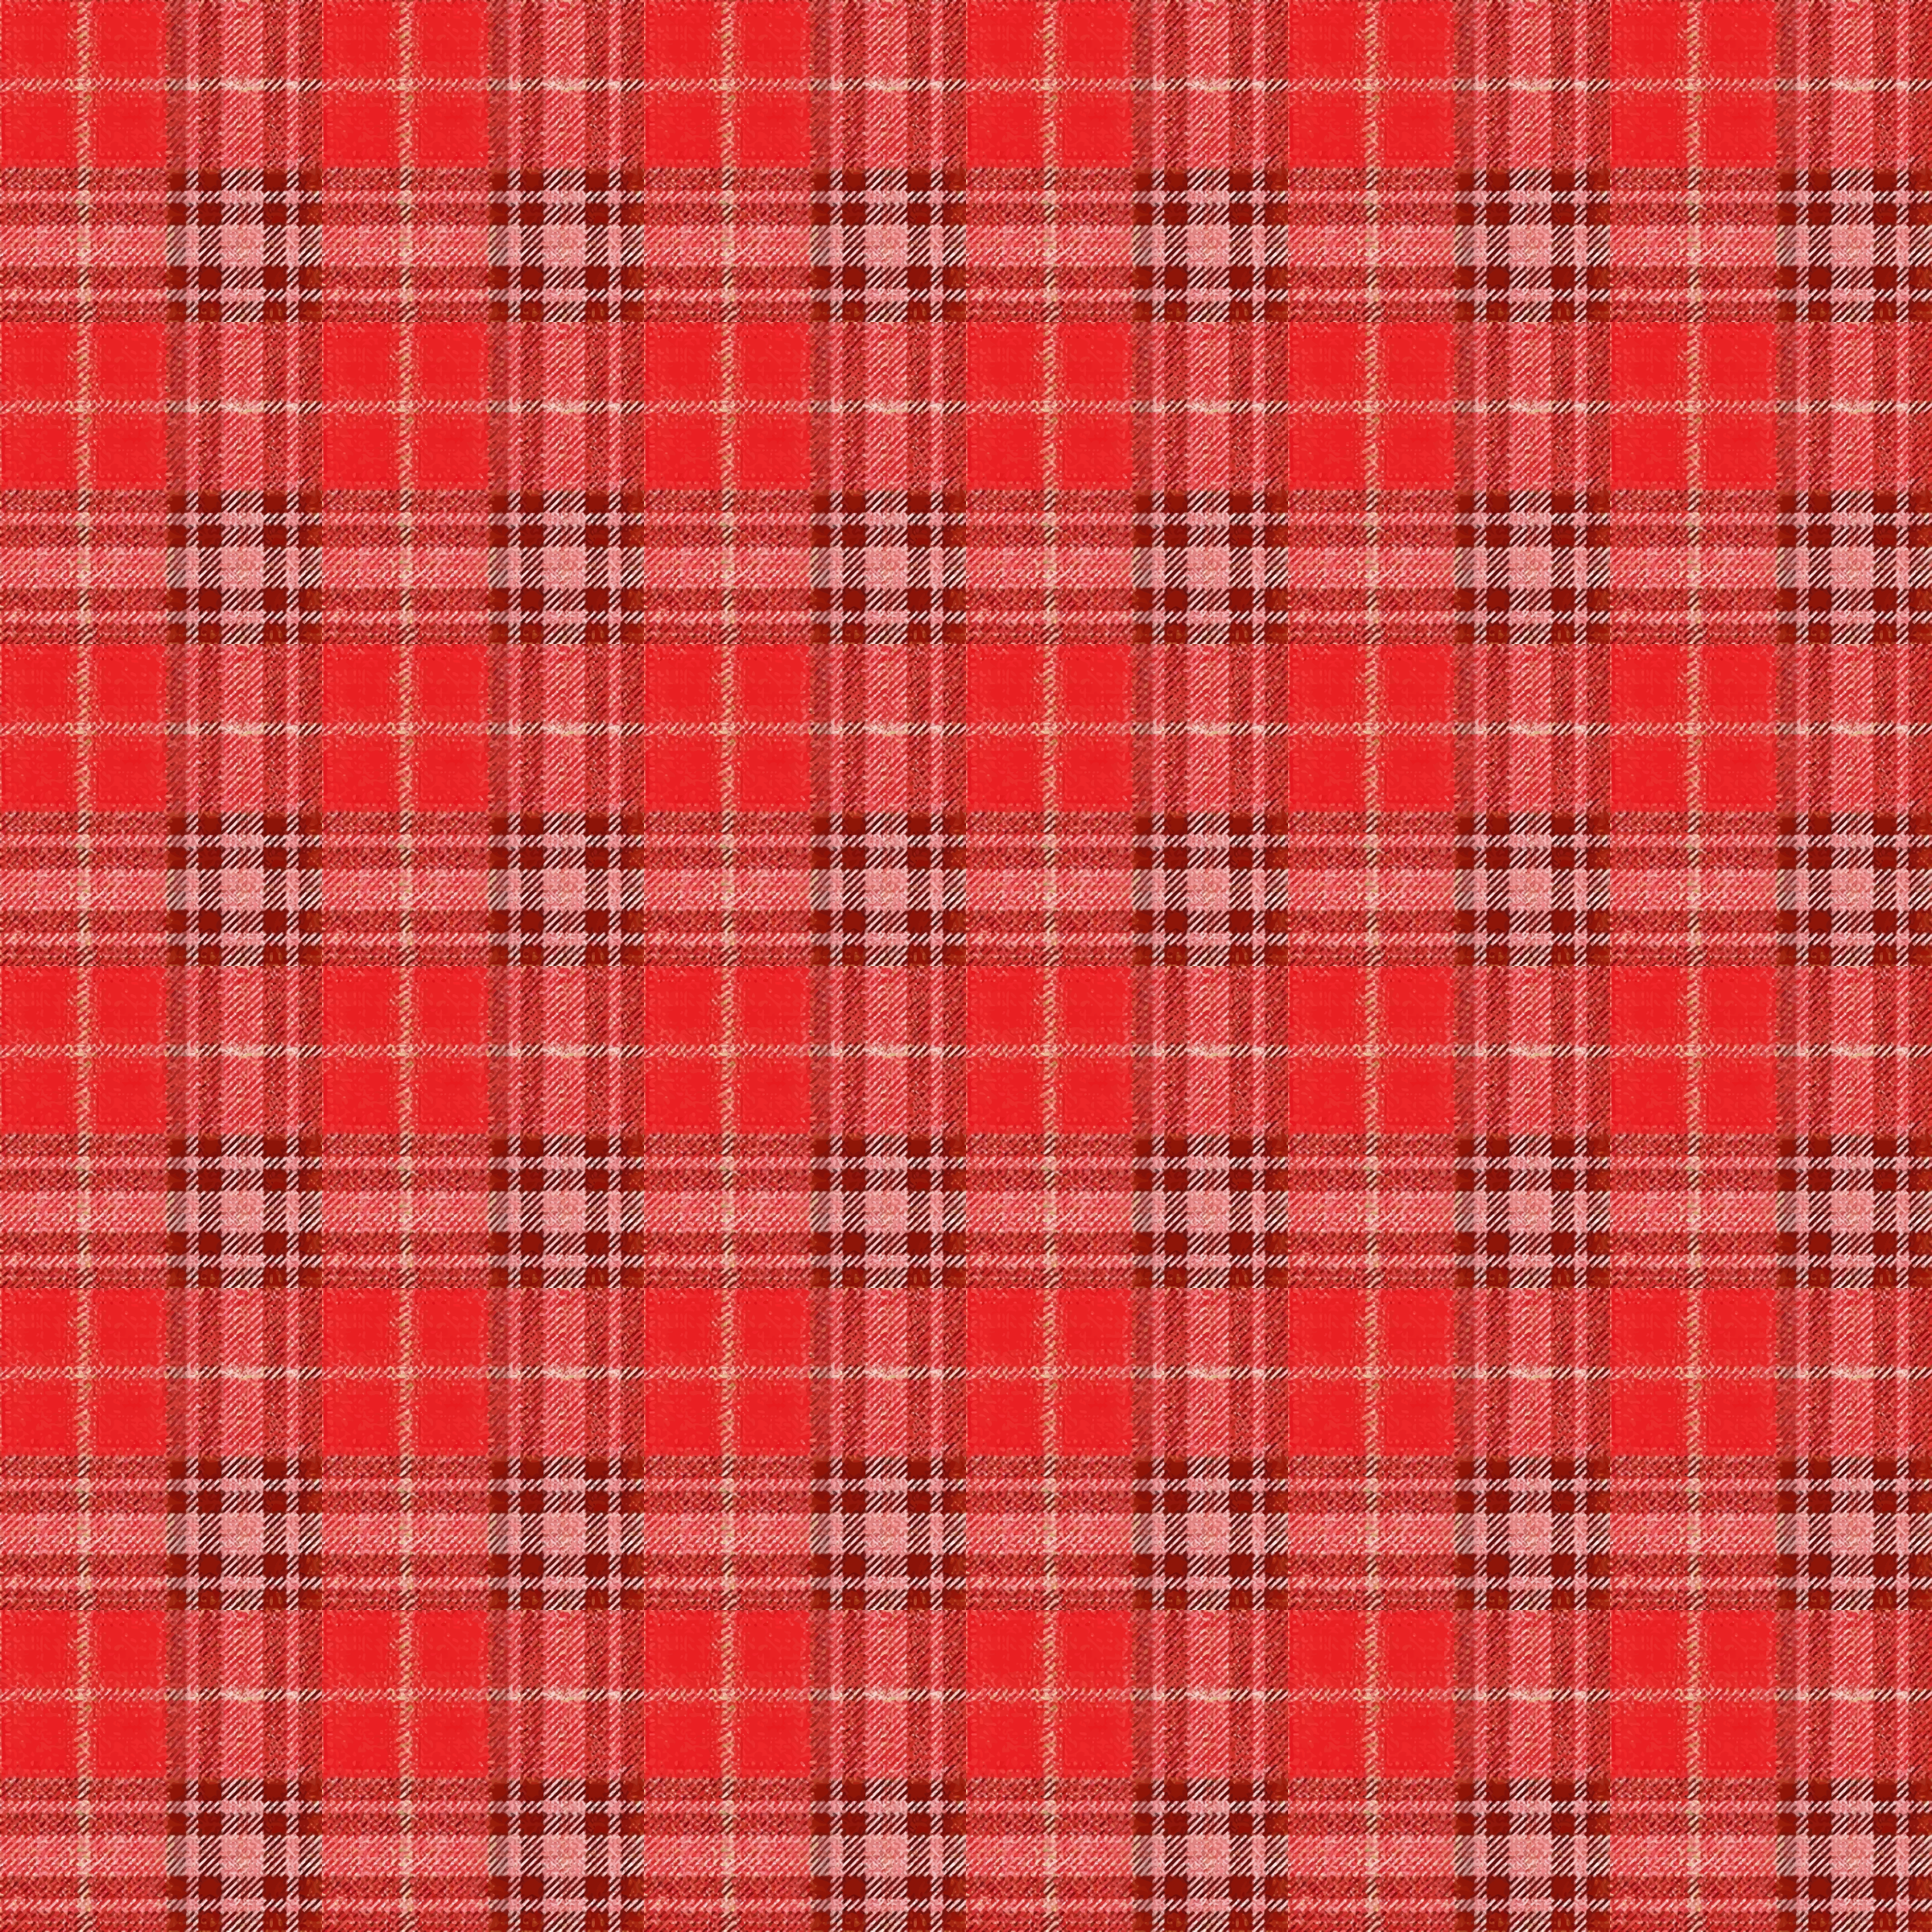 Chequered tablecloth 2 by Firkin